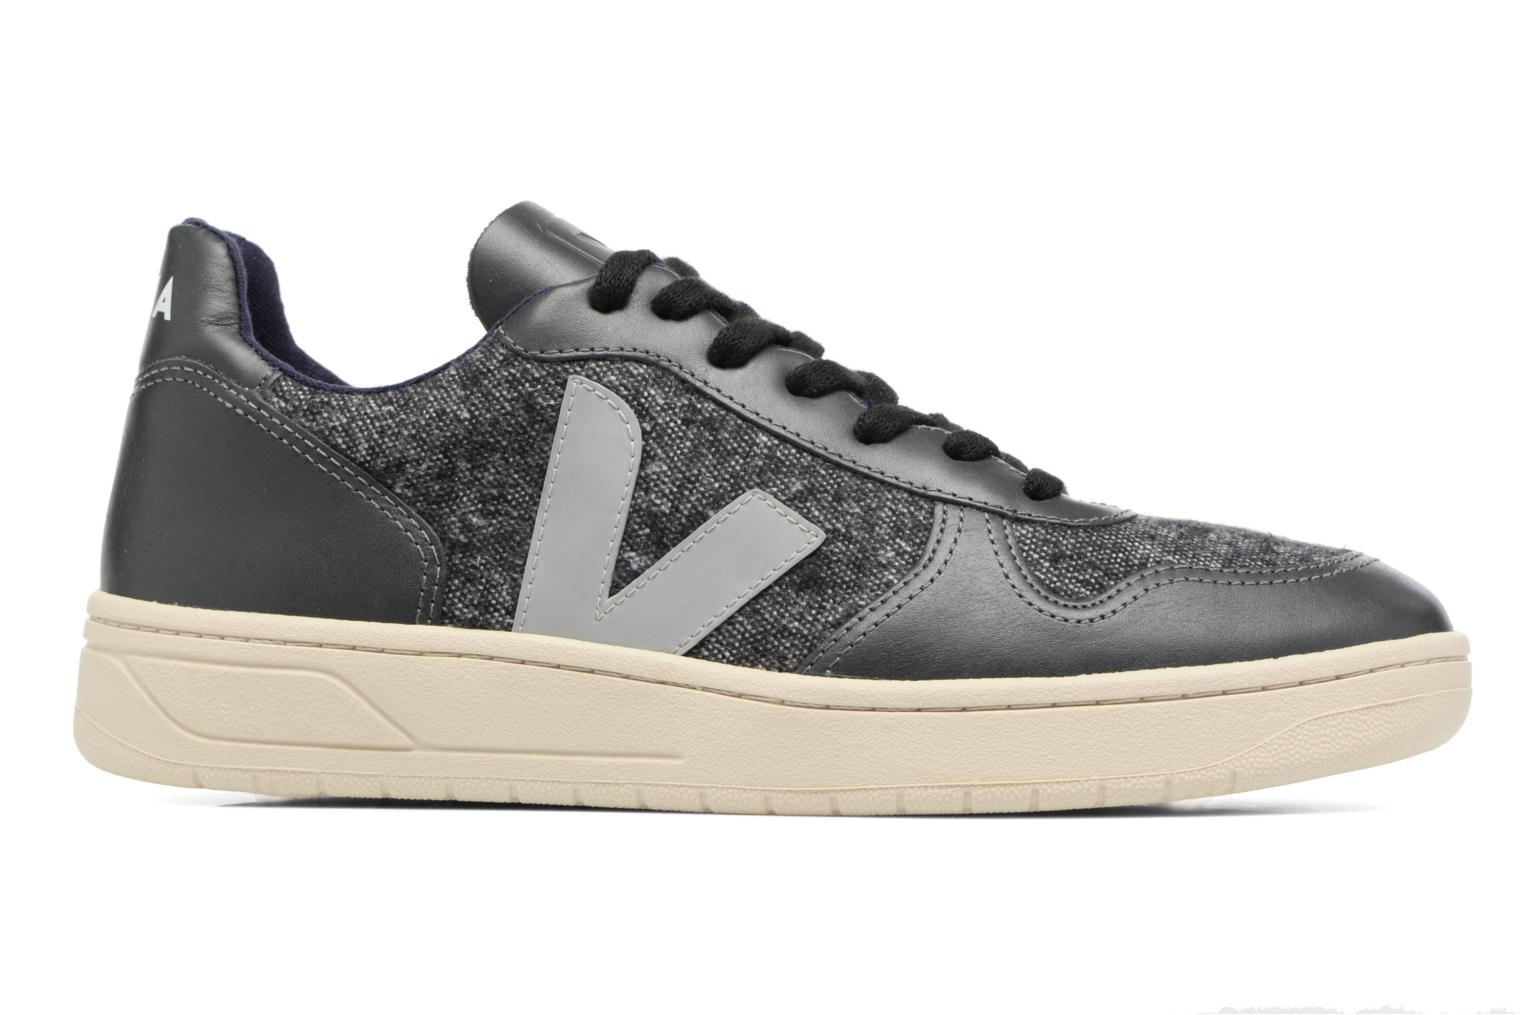 V-10 FLANNEL GRAFITE GRAFITE OXFORD GREY